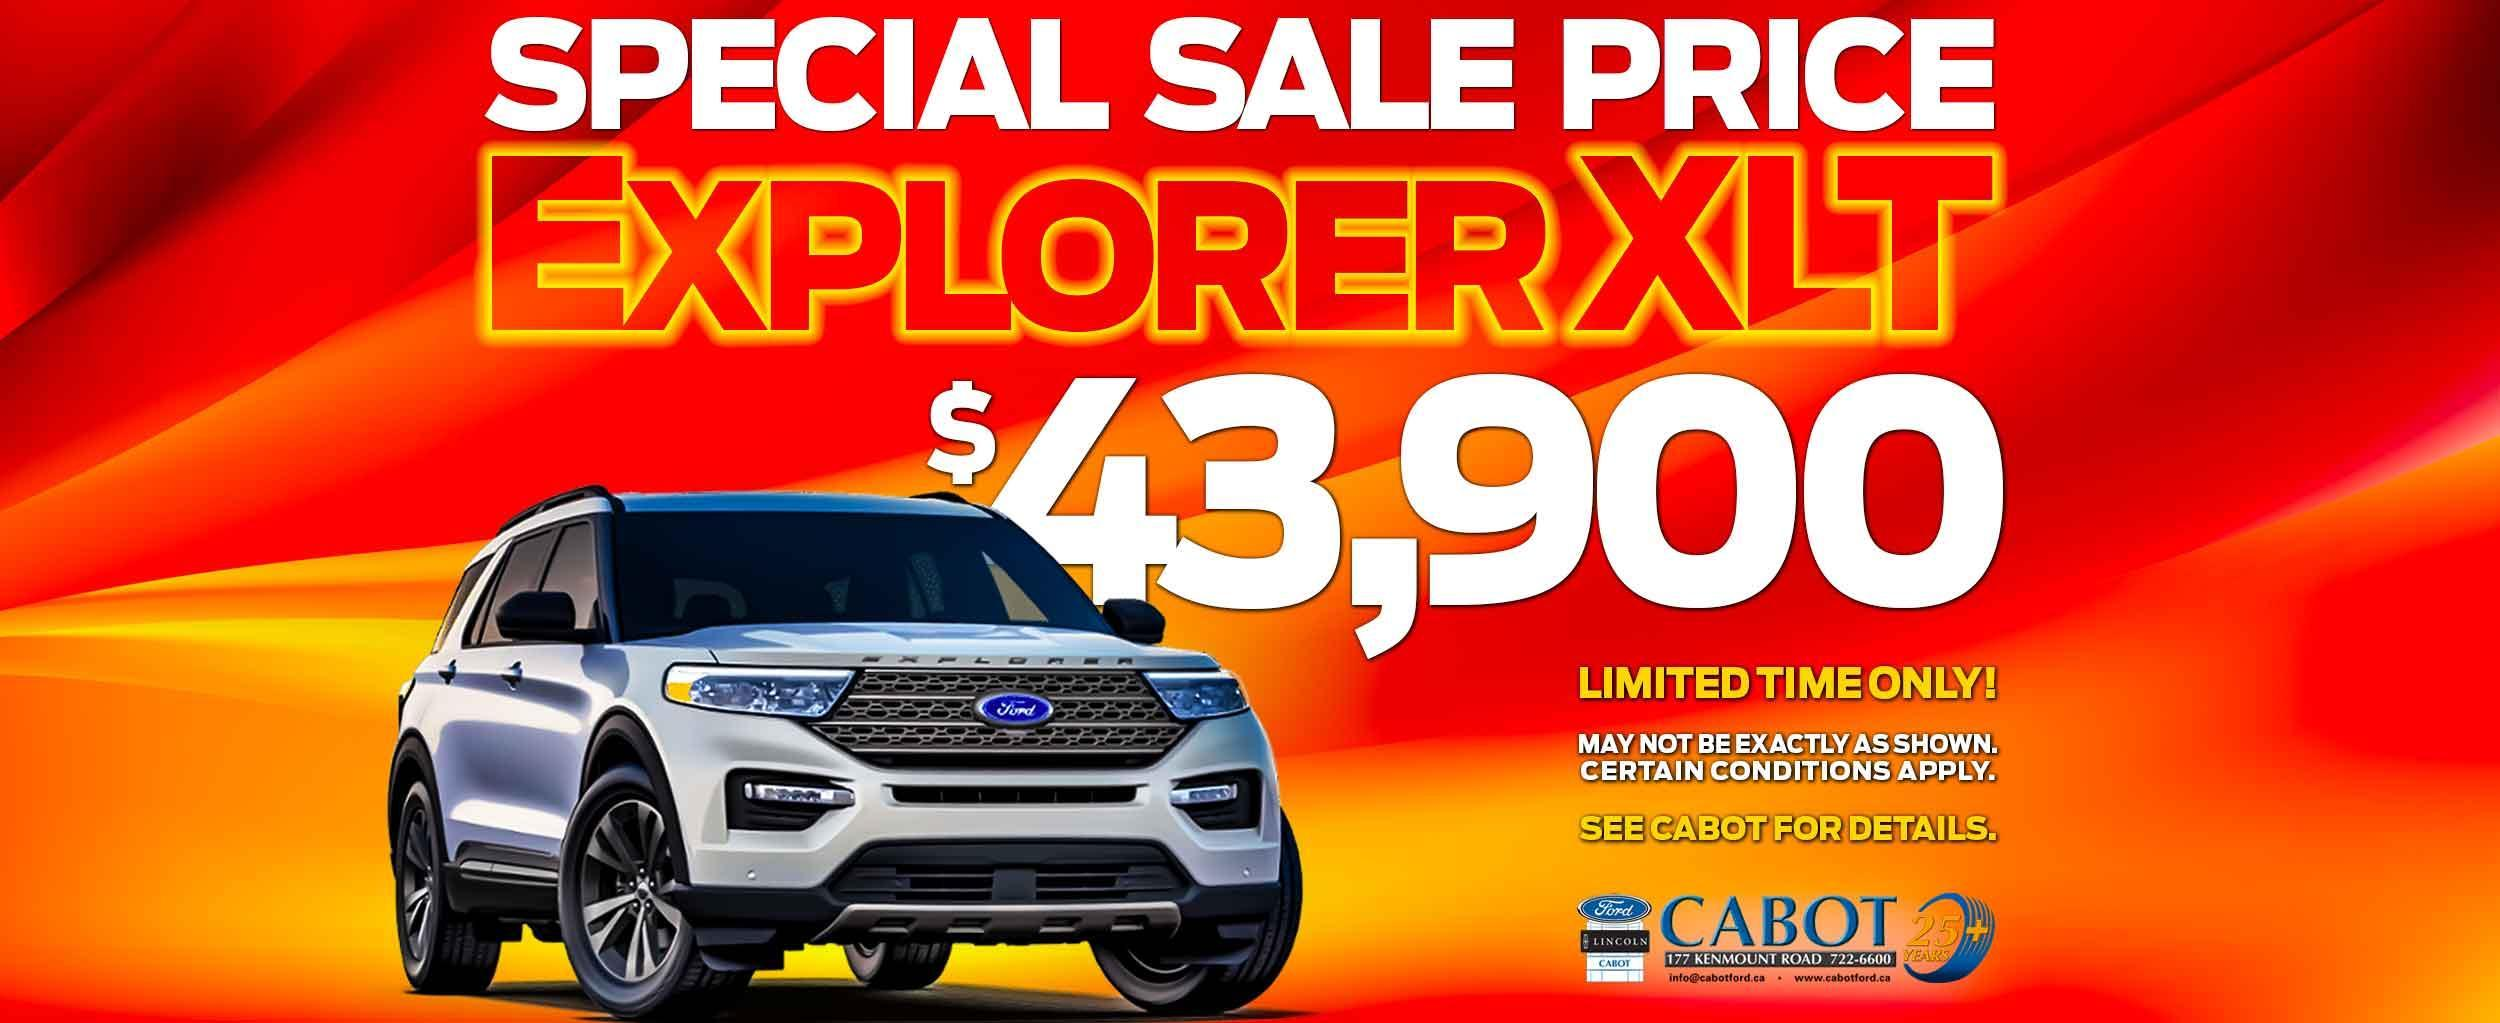 GET THE 2021 FORD EXPLORER XLT FOR JUST $43,900!